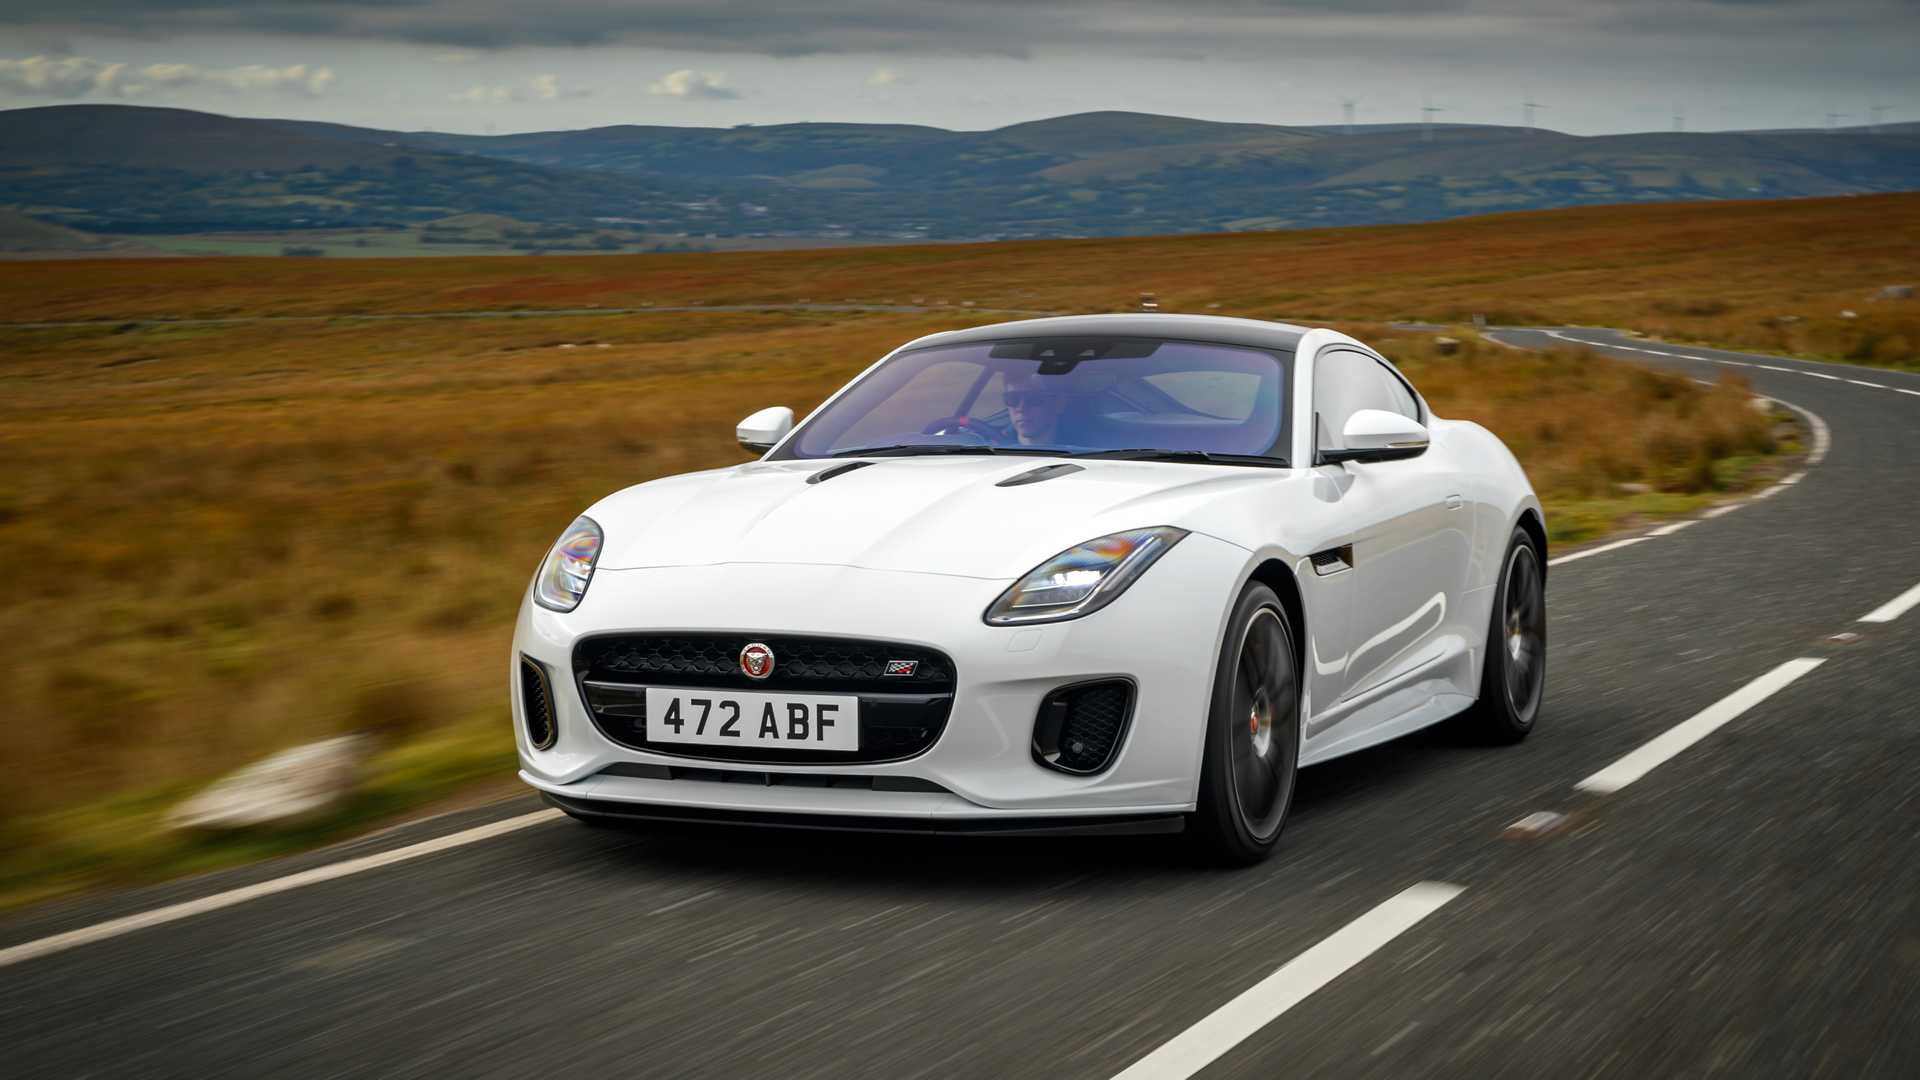 2020-jaguar-f-type-checkered-flag-edition (12)